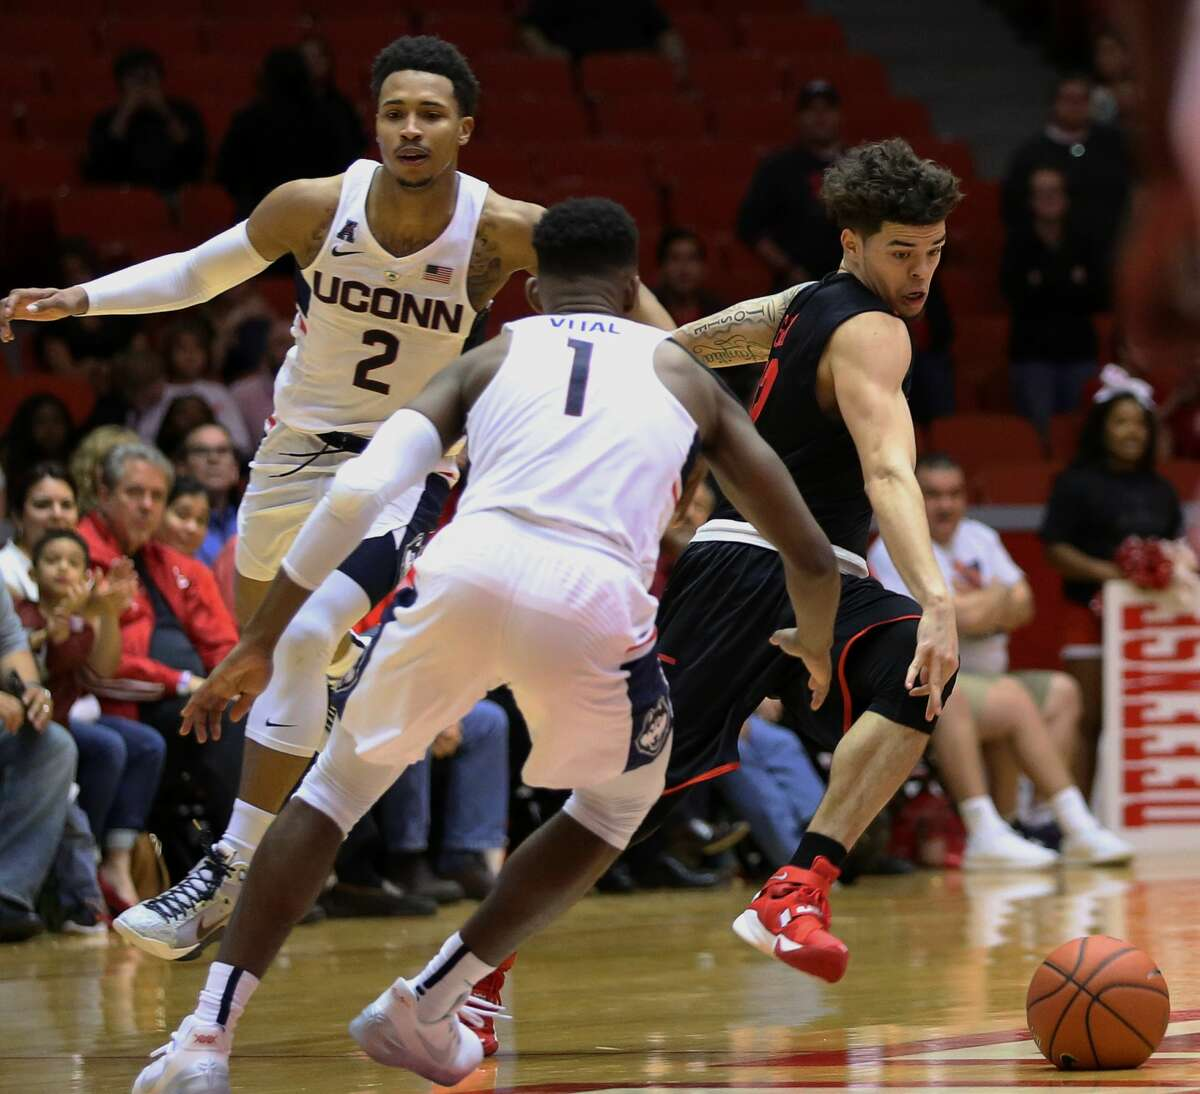 Houston Cougars guard Rob Gray (32) is fouled by Connecticut Huskies guard Christian Vital (1) while dribbling down the court during the second half of the game Wednesday, Feb. 22, 2017, in Houston. ( Yi-Chin Lee / Houston Chronicle )